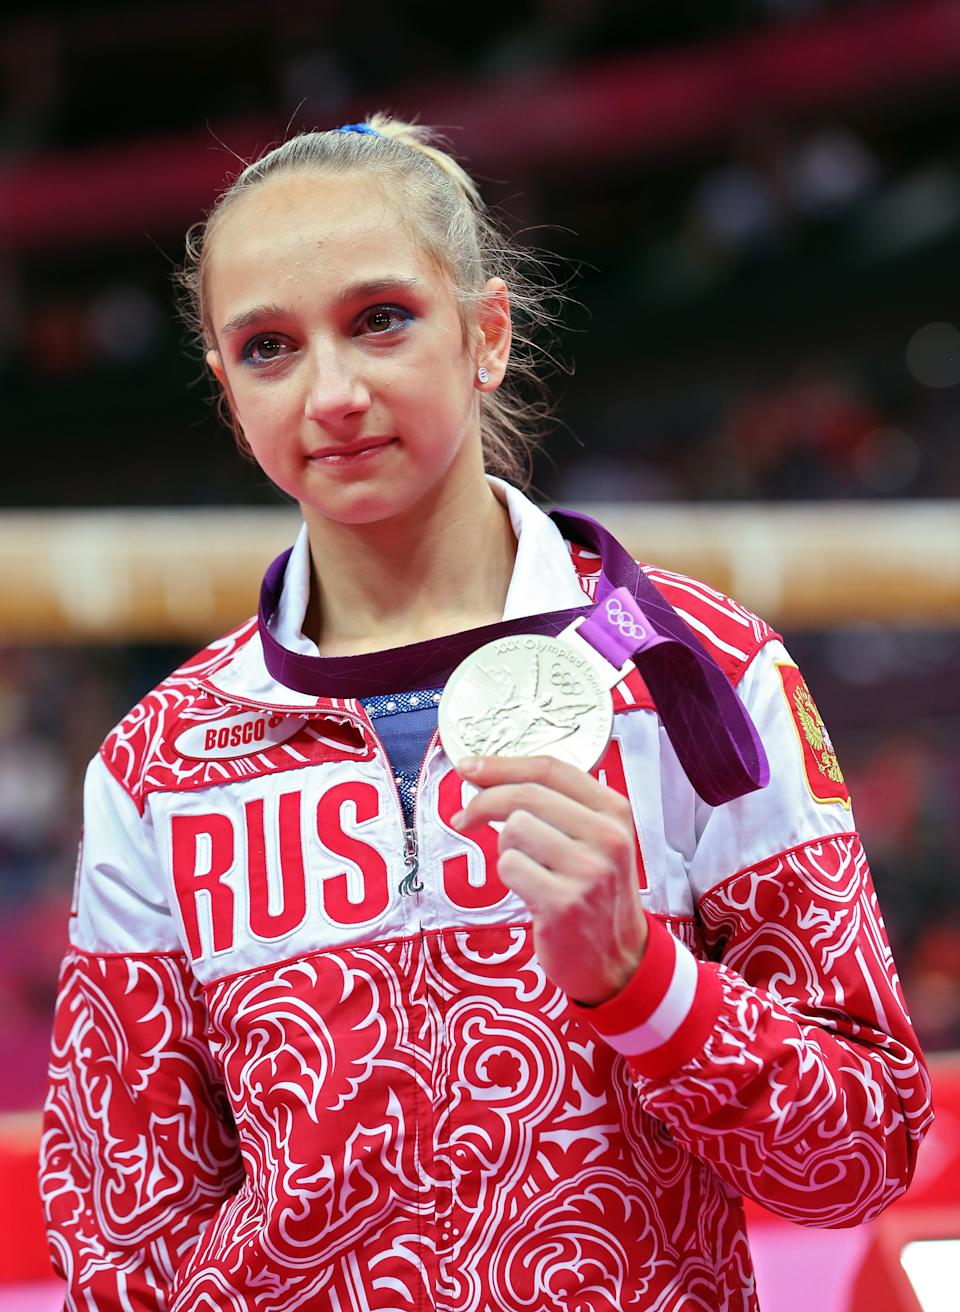 LONDON, ENGLAND - AUGUST 02: Victoria Komova of Russia poses with her silver medal after the Artistic Gymnastics Women's Individual All-Around final on Day 6 of the London 2012 Olympic Games at North Greenwich Arena on August 2, 2012 in London, England. (Photo by Ronald Martinez/Getty Images)